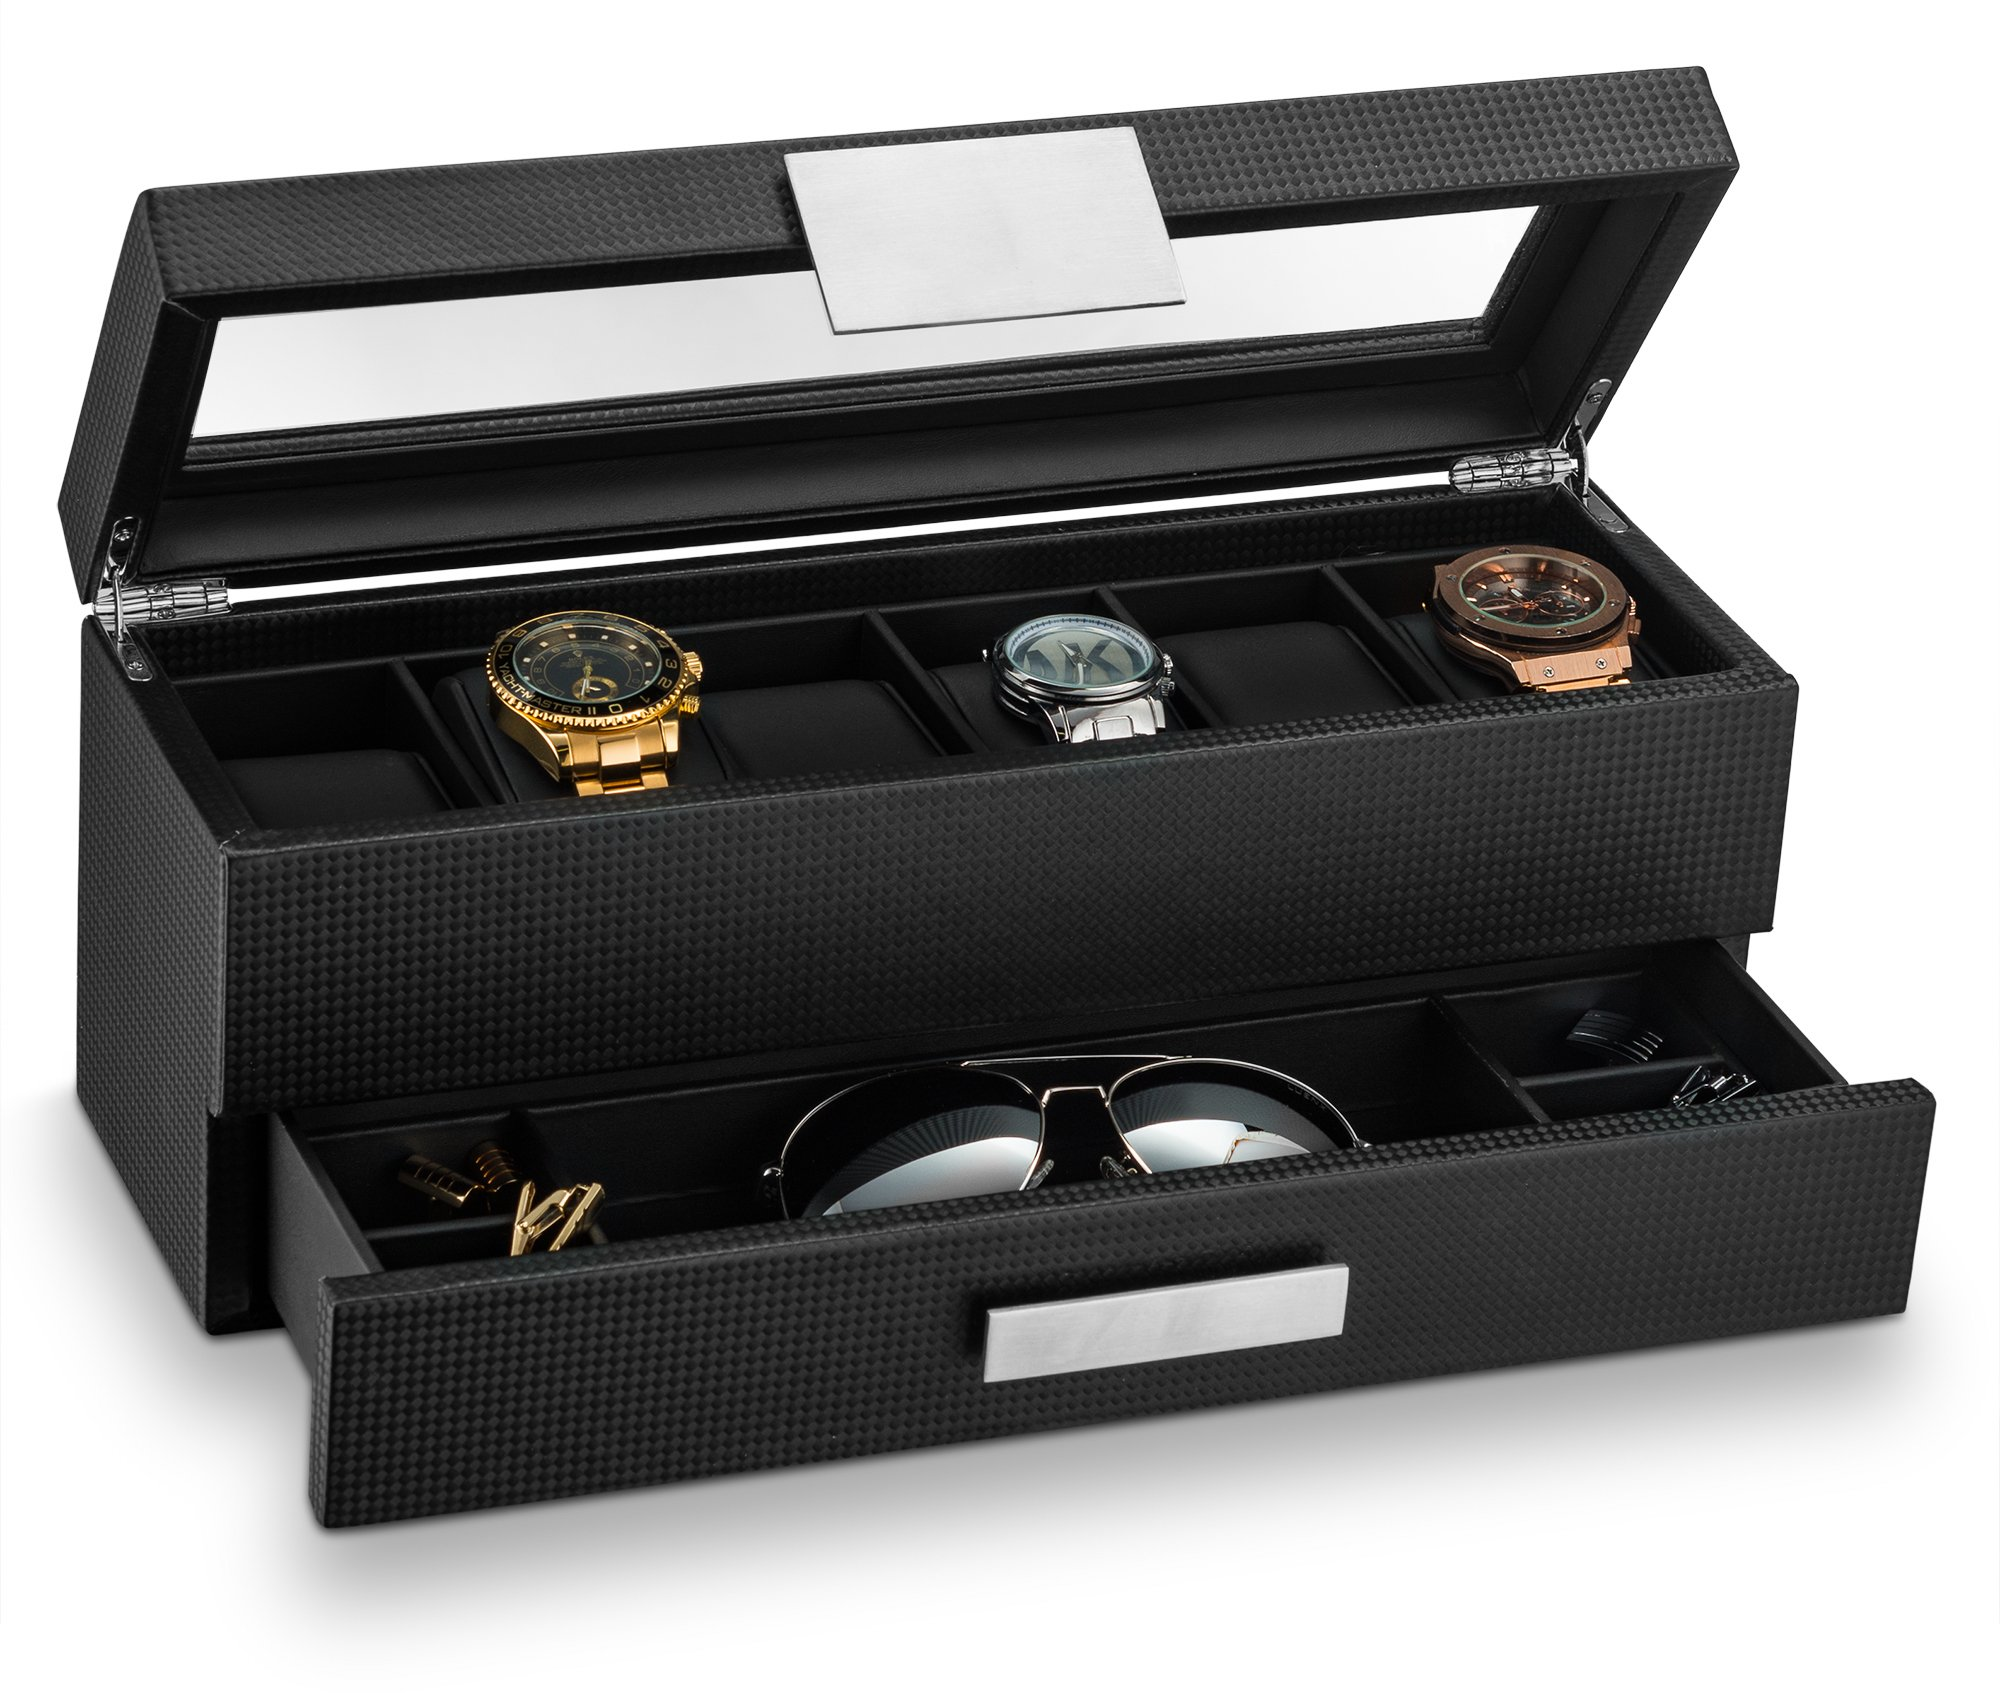 Glenor Co Watch Box with Valet Drawer for Men - 6 Slot Luxury Watch Case Display Organizer, Carbon Fiber Design -Metal Buckle for Mens Jewelry Watches, Men's Storage Holder Boxes has a Large Glass Top by Glenor Co